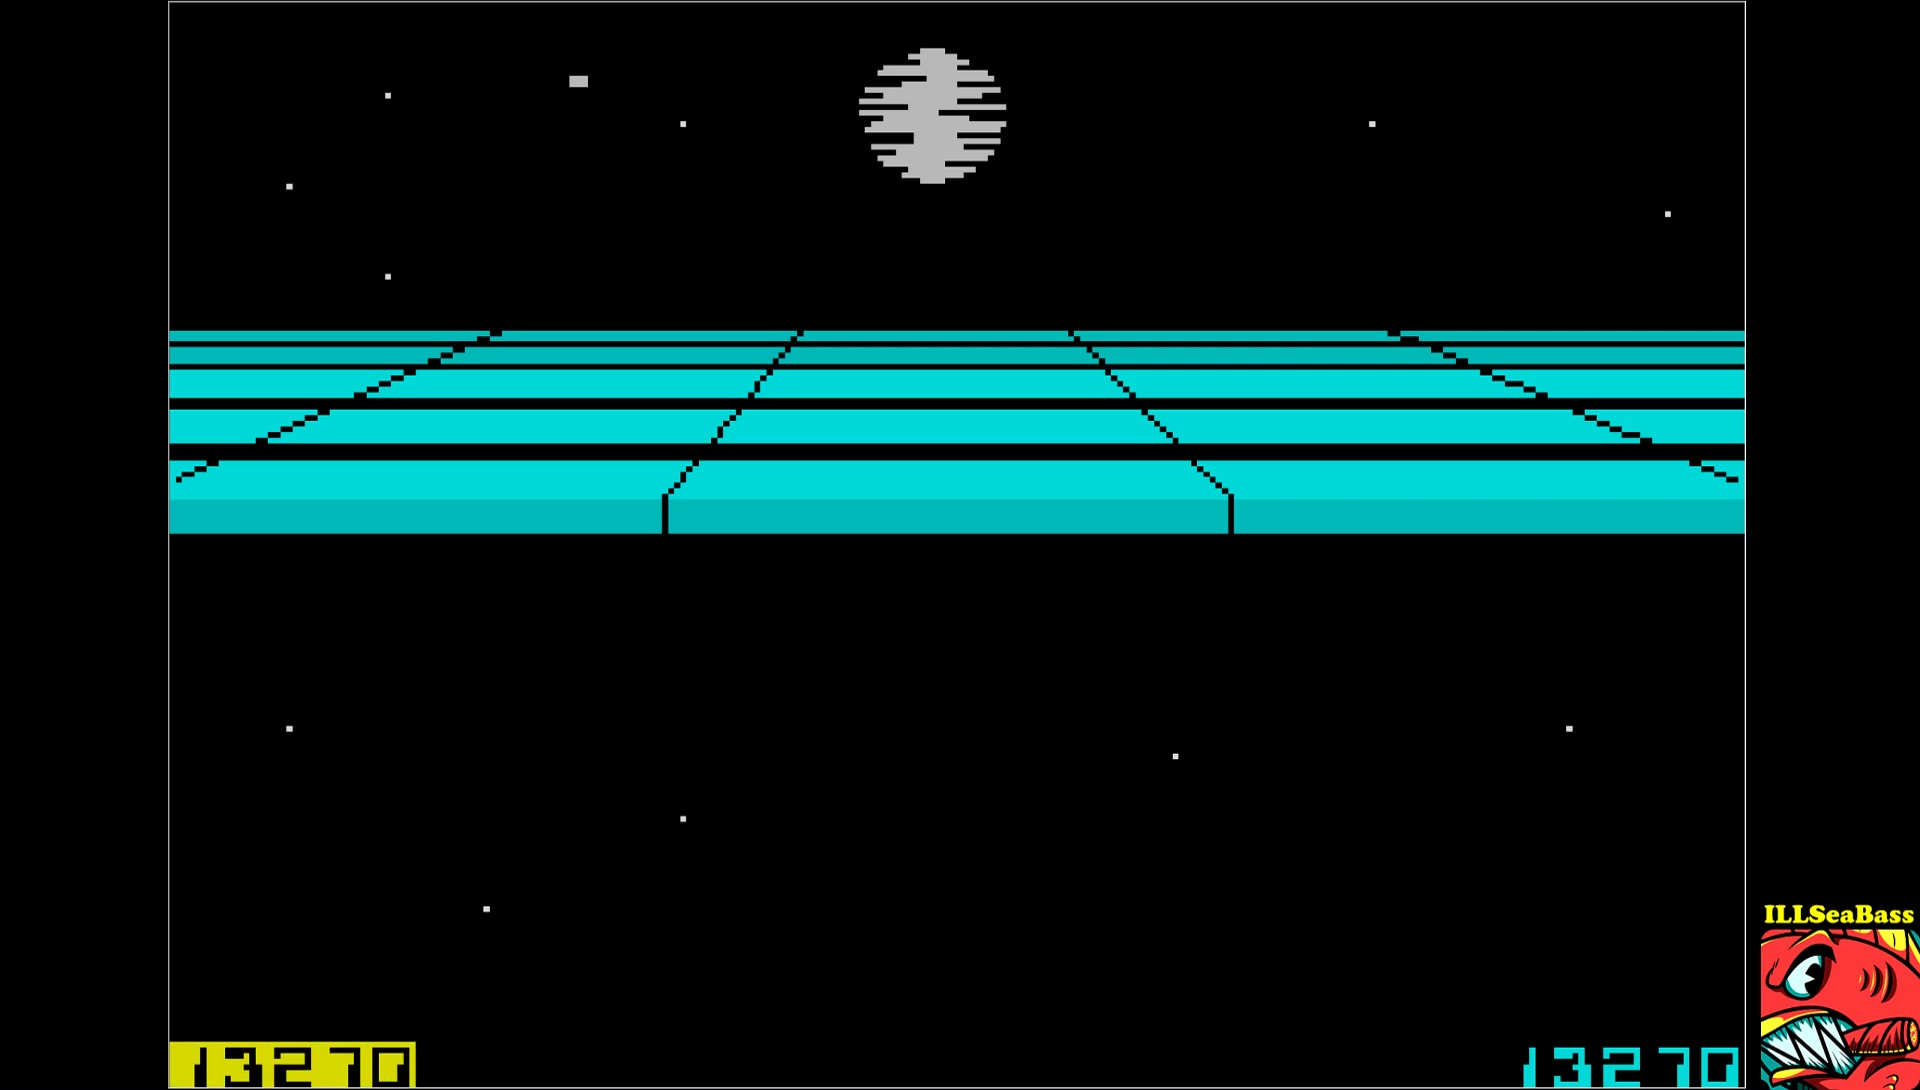 ILLSeaBass: Return Of The Jedi: Death Star Battle (ZX Spectrum Emulated) 13,270 points on 2017-06-17 12:20:42